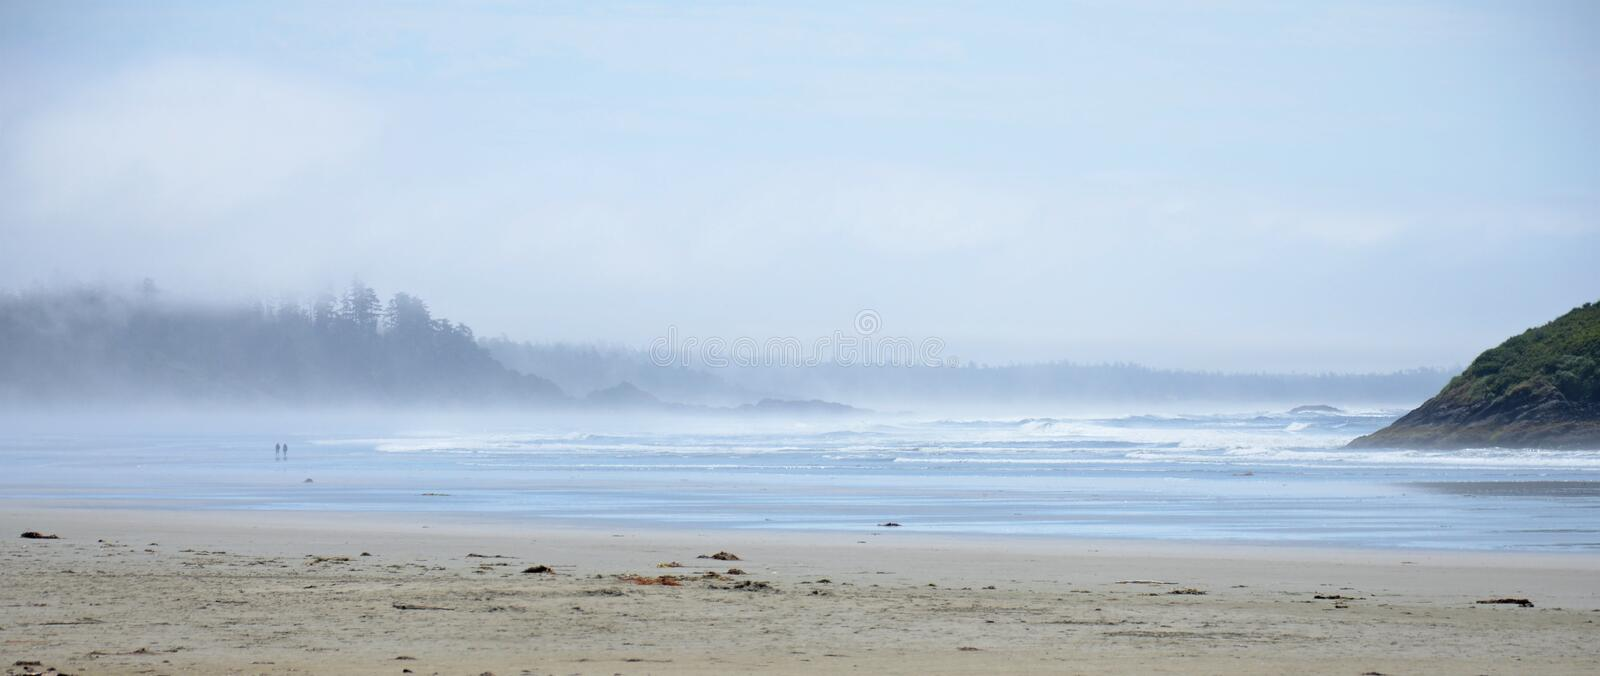 Panoramic view of pacific shore with big ocean waves and foggy skyline, stock image